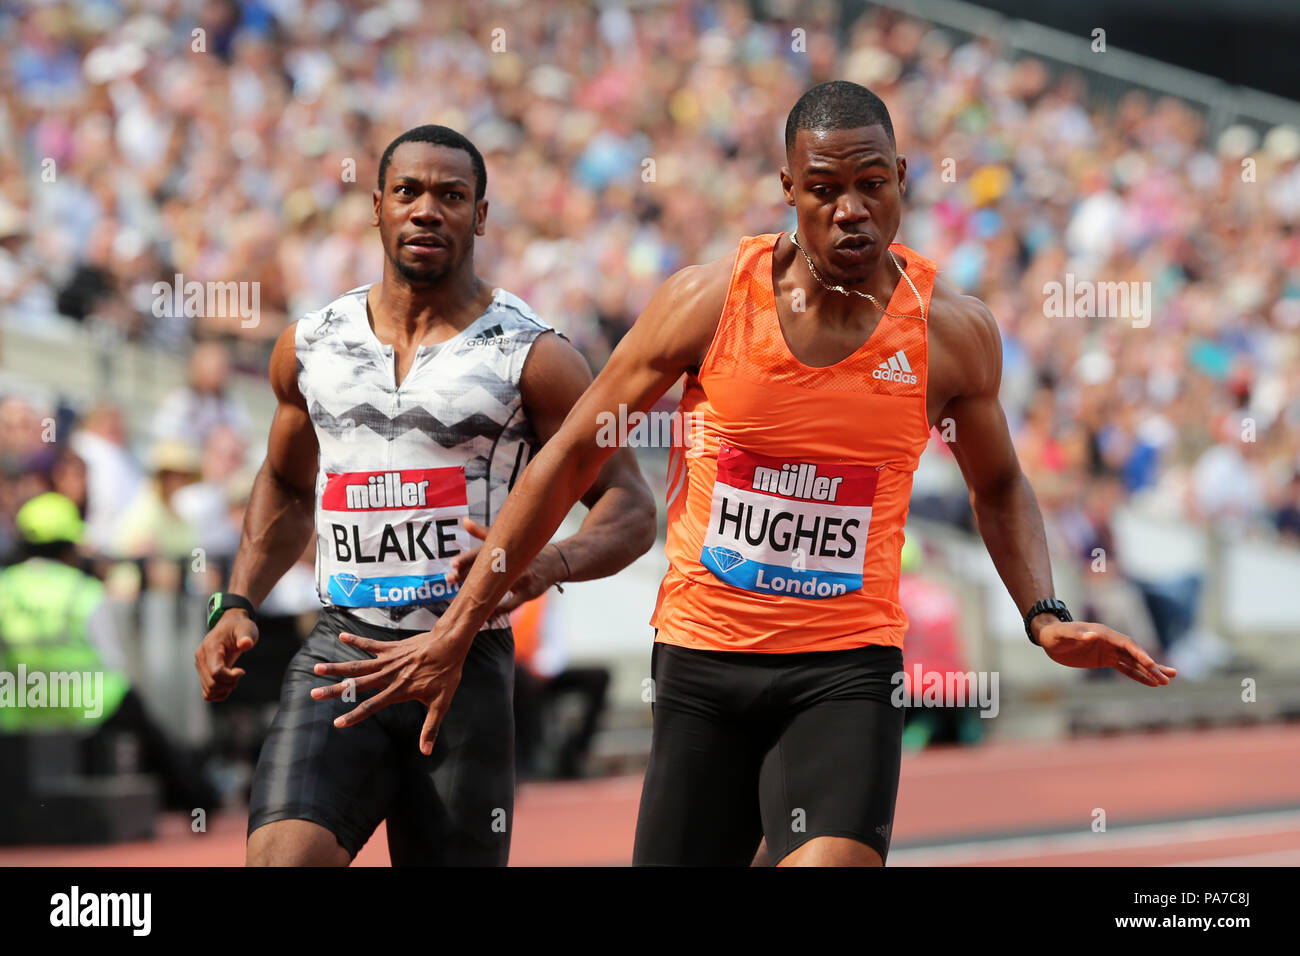 London, UK. 21st July 18. Akani SIMBINE (South Africa), Zharnel HUGHES (Great Britain) crossing the finish line in the Men's 100m Final at the 2018, IAAF Diamond League, Anniversary Games, Queen Elizabeth Olympic Park, Stratford, London, UK. Credit: Simon Balson/Alamy Live News - Stock Image